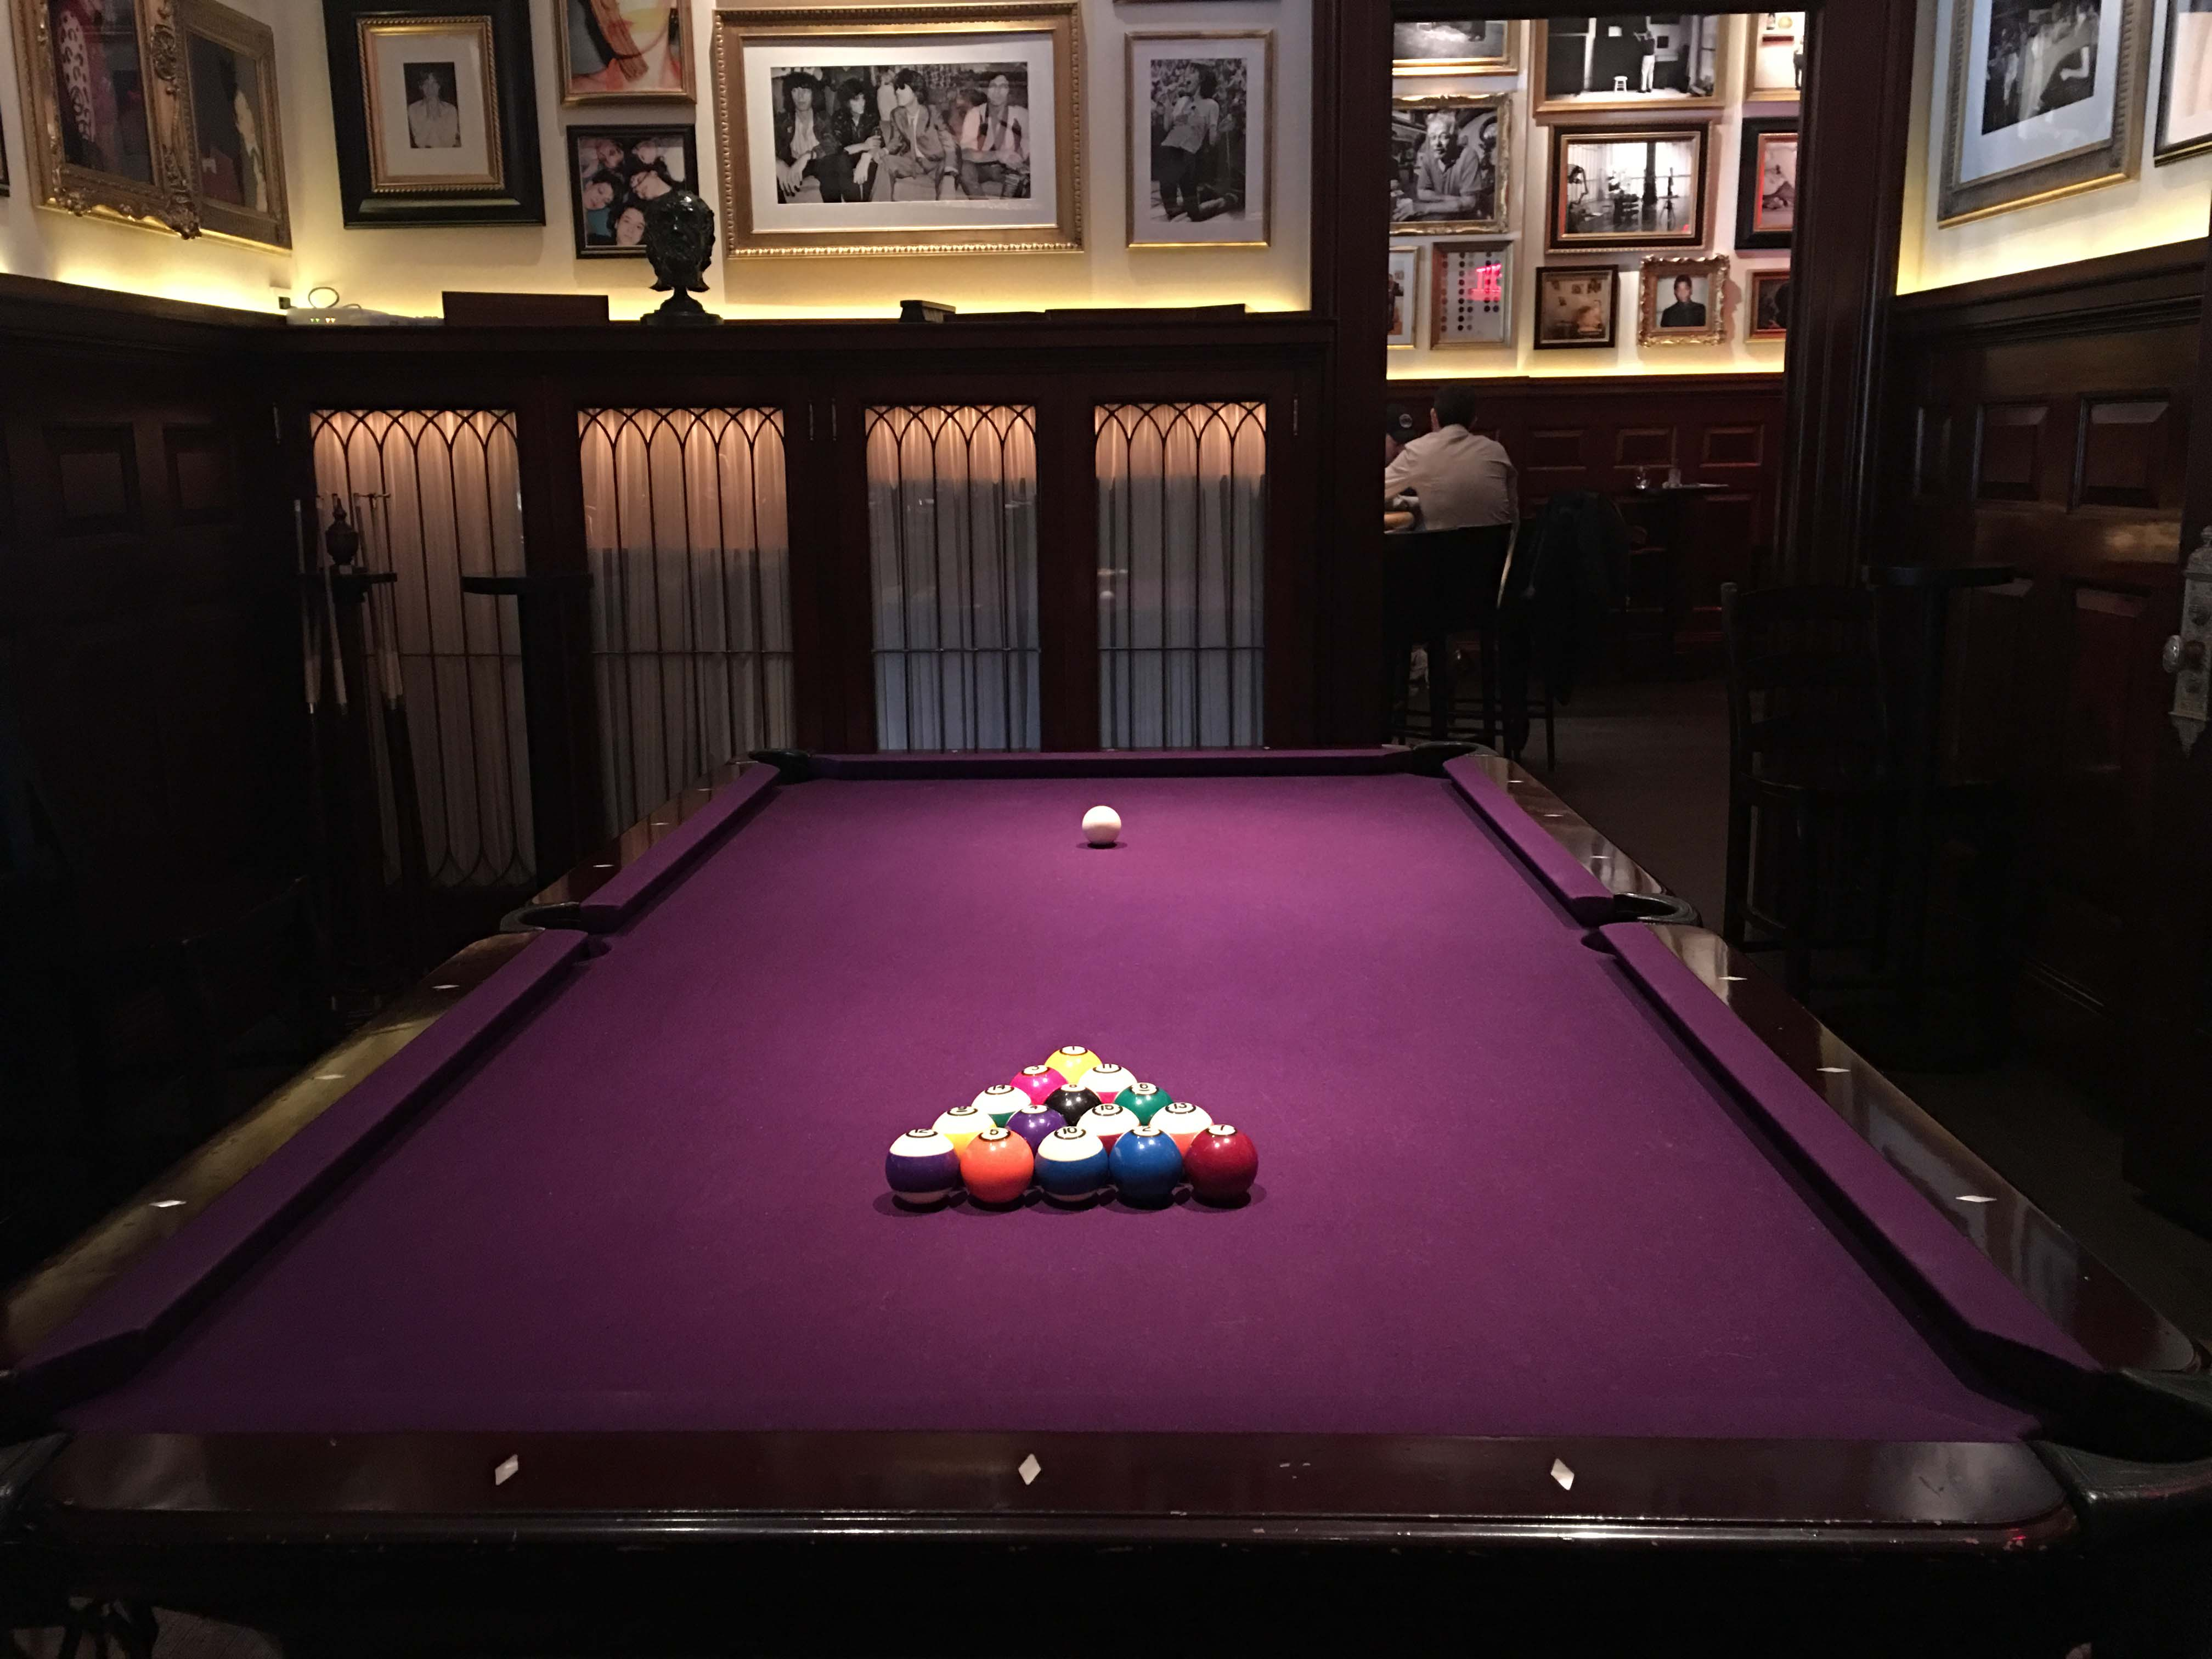 Pool table at The Clocktower